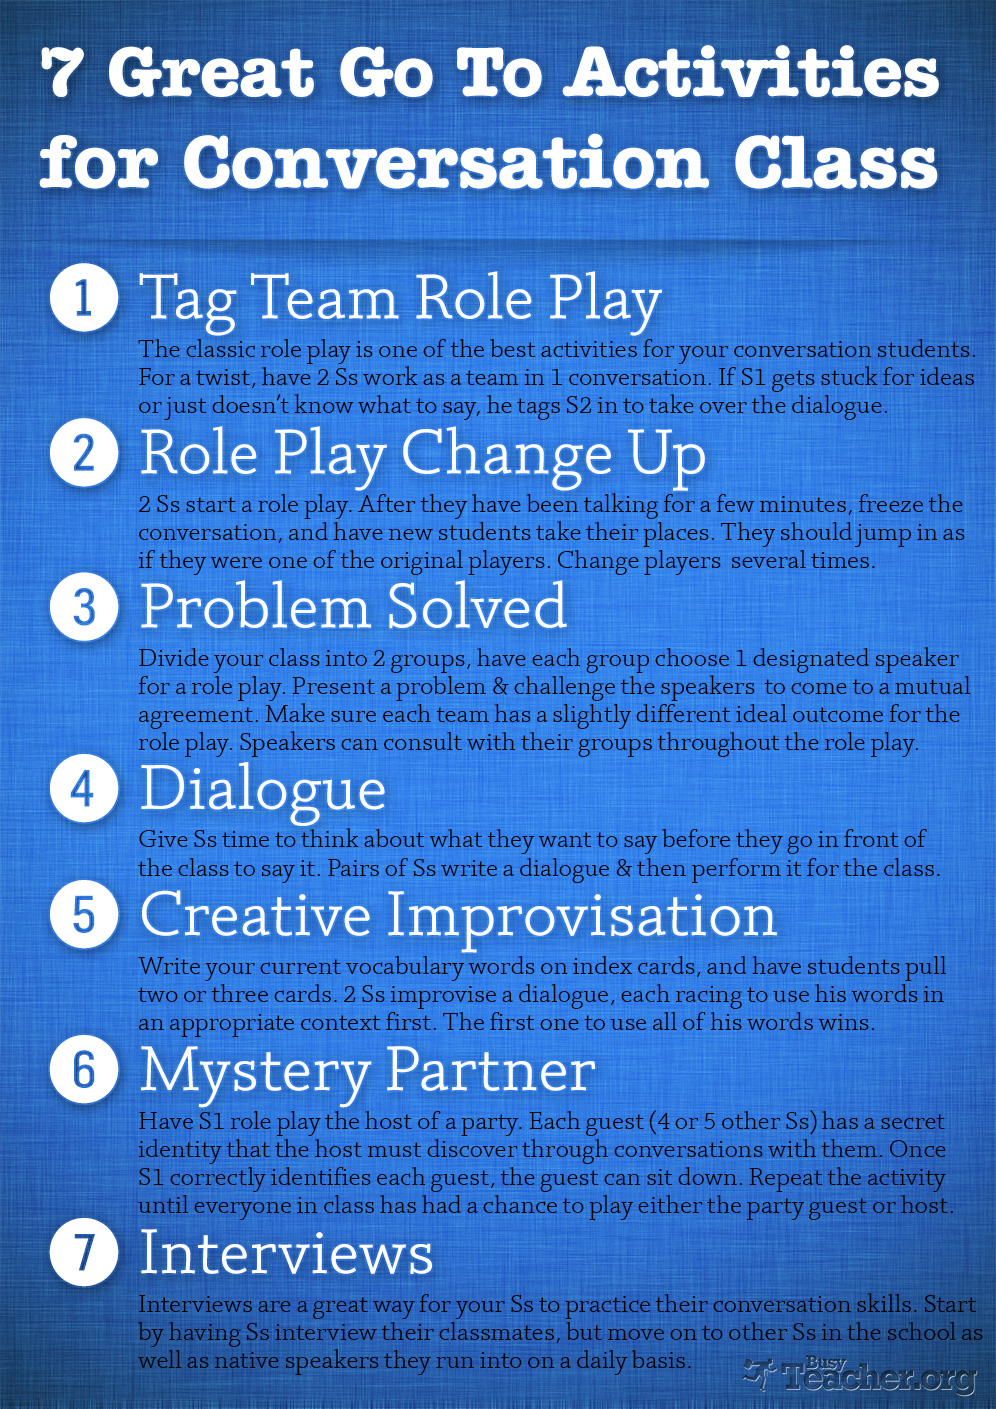 7 Great Go To Activities for Conversation Class: Poster